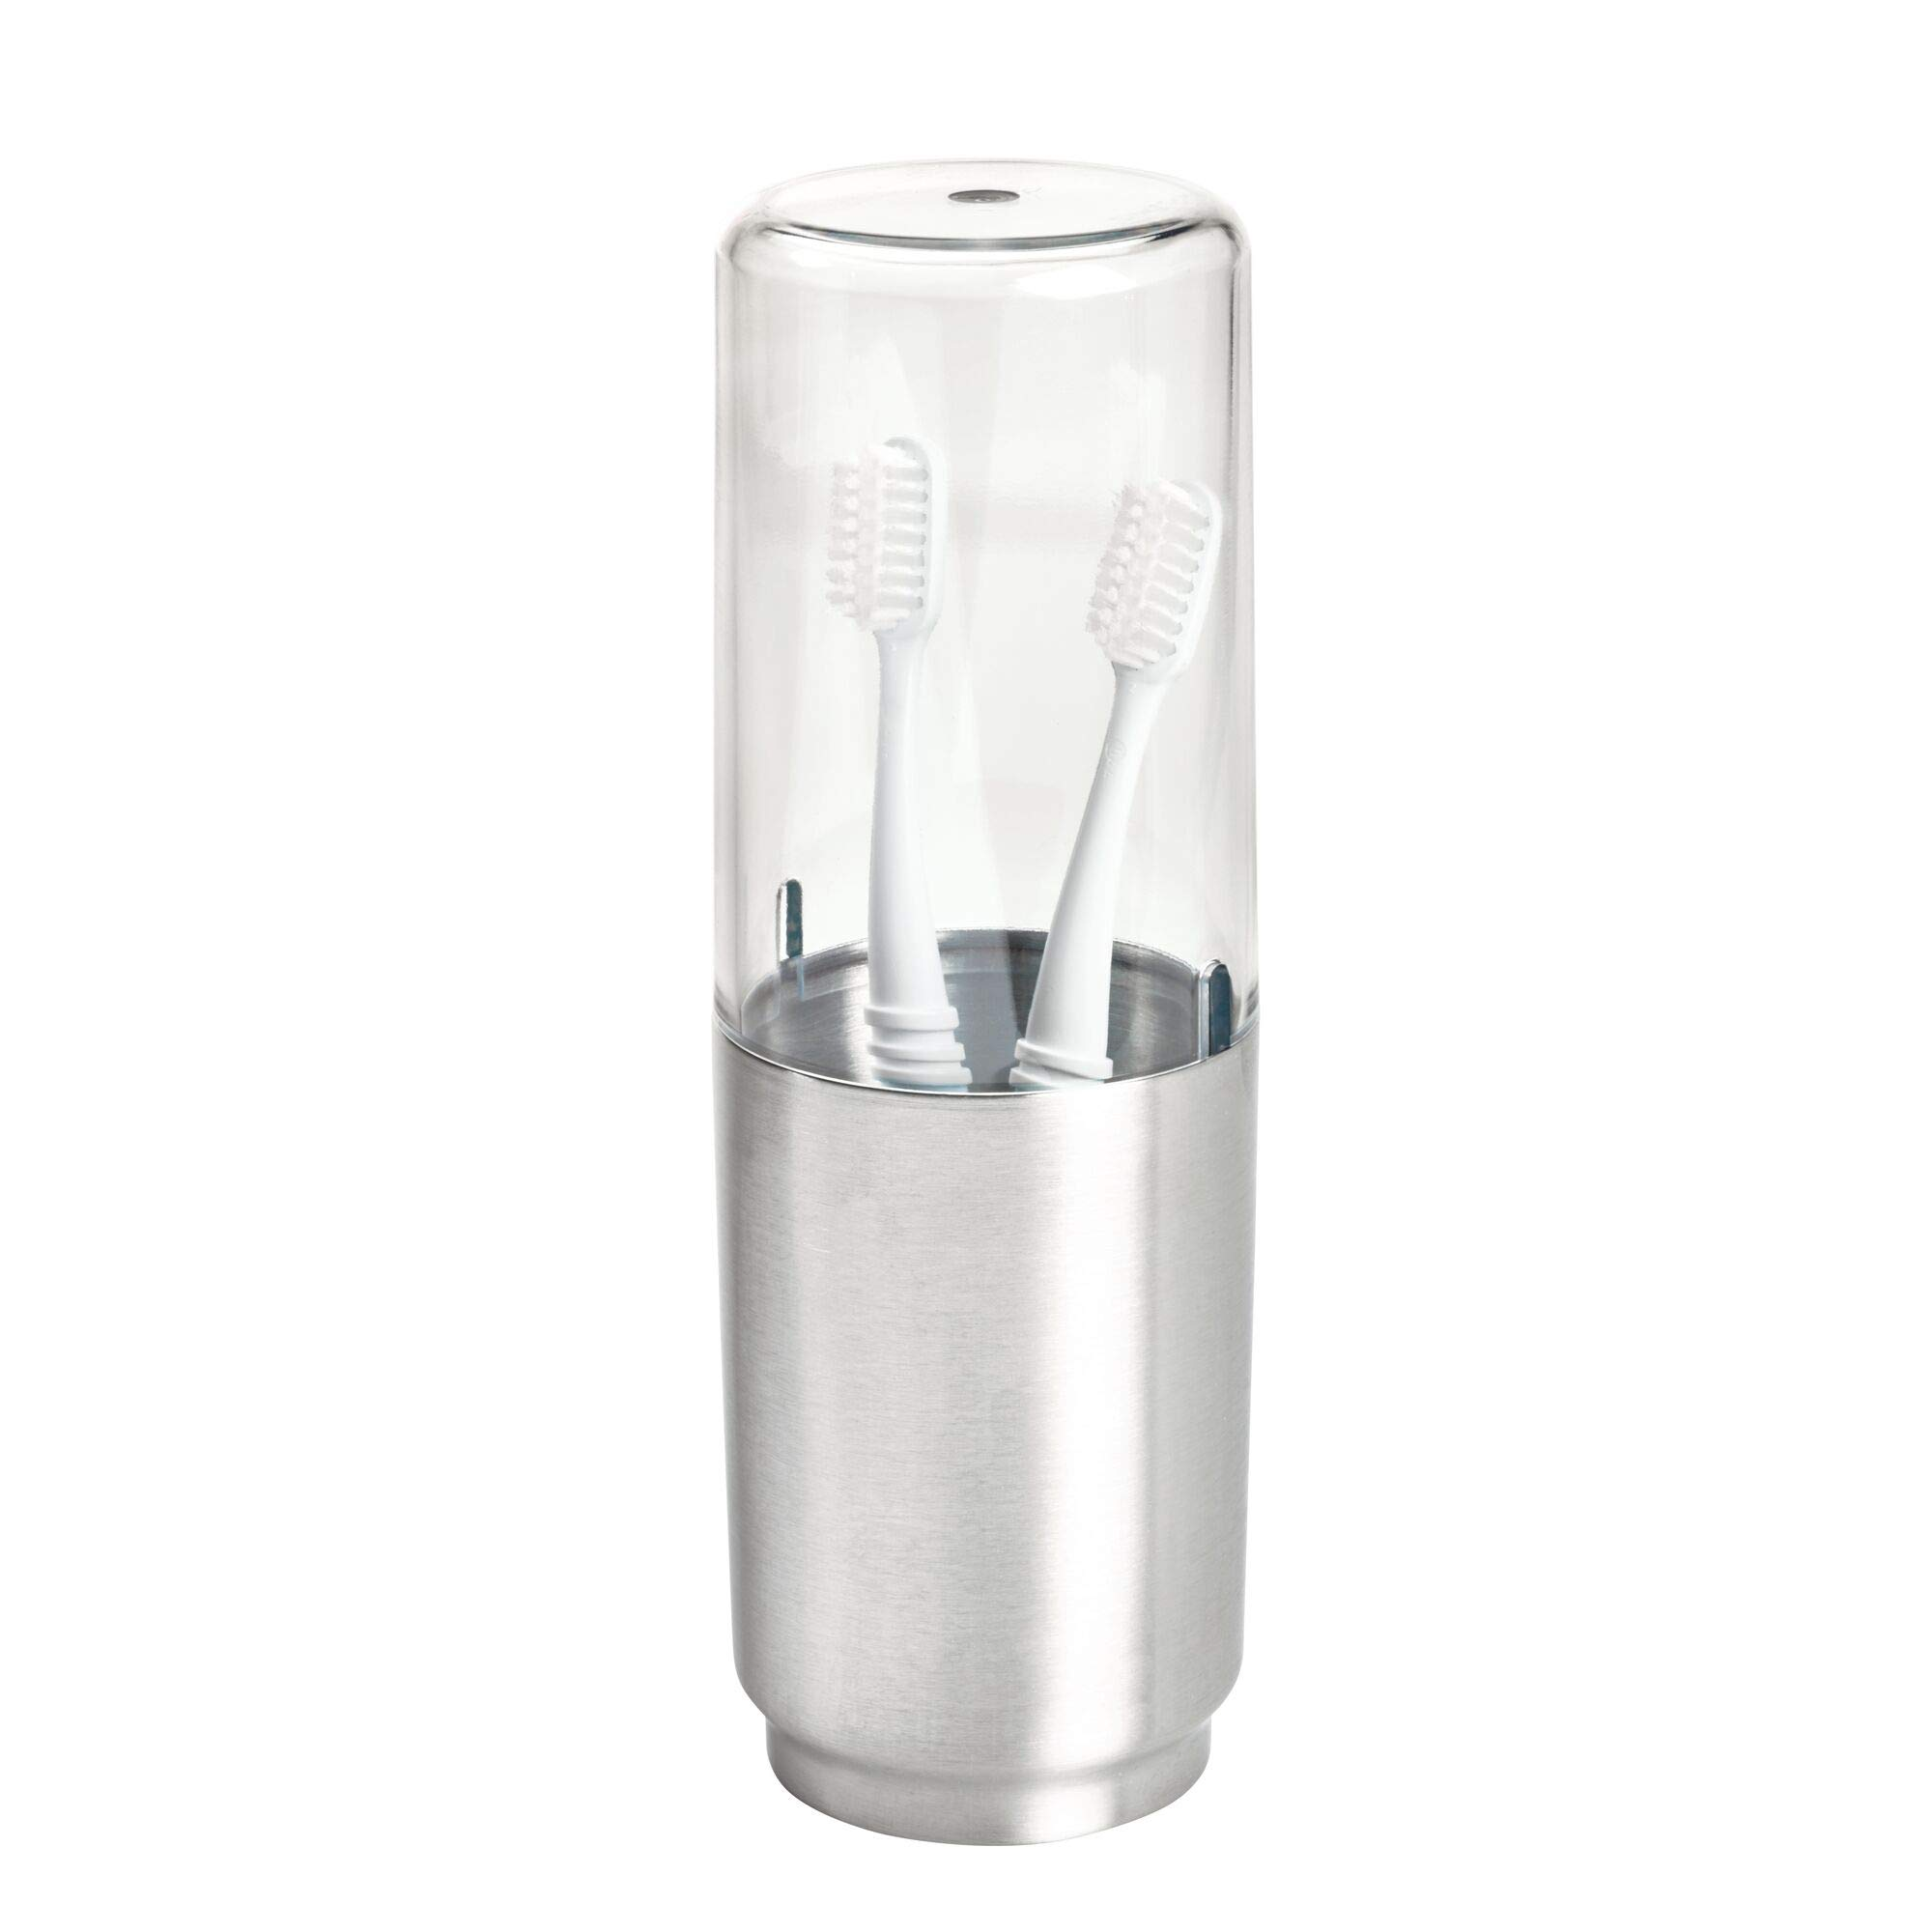 iDesign Austin Covered Toothbrush Holder, Holds Regular and Electric Toothbrushes - Clear Frost and Brushed by iDesign